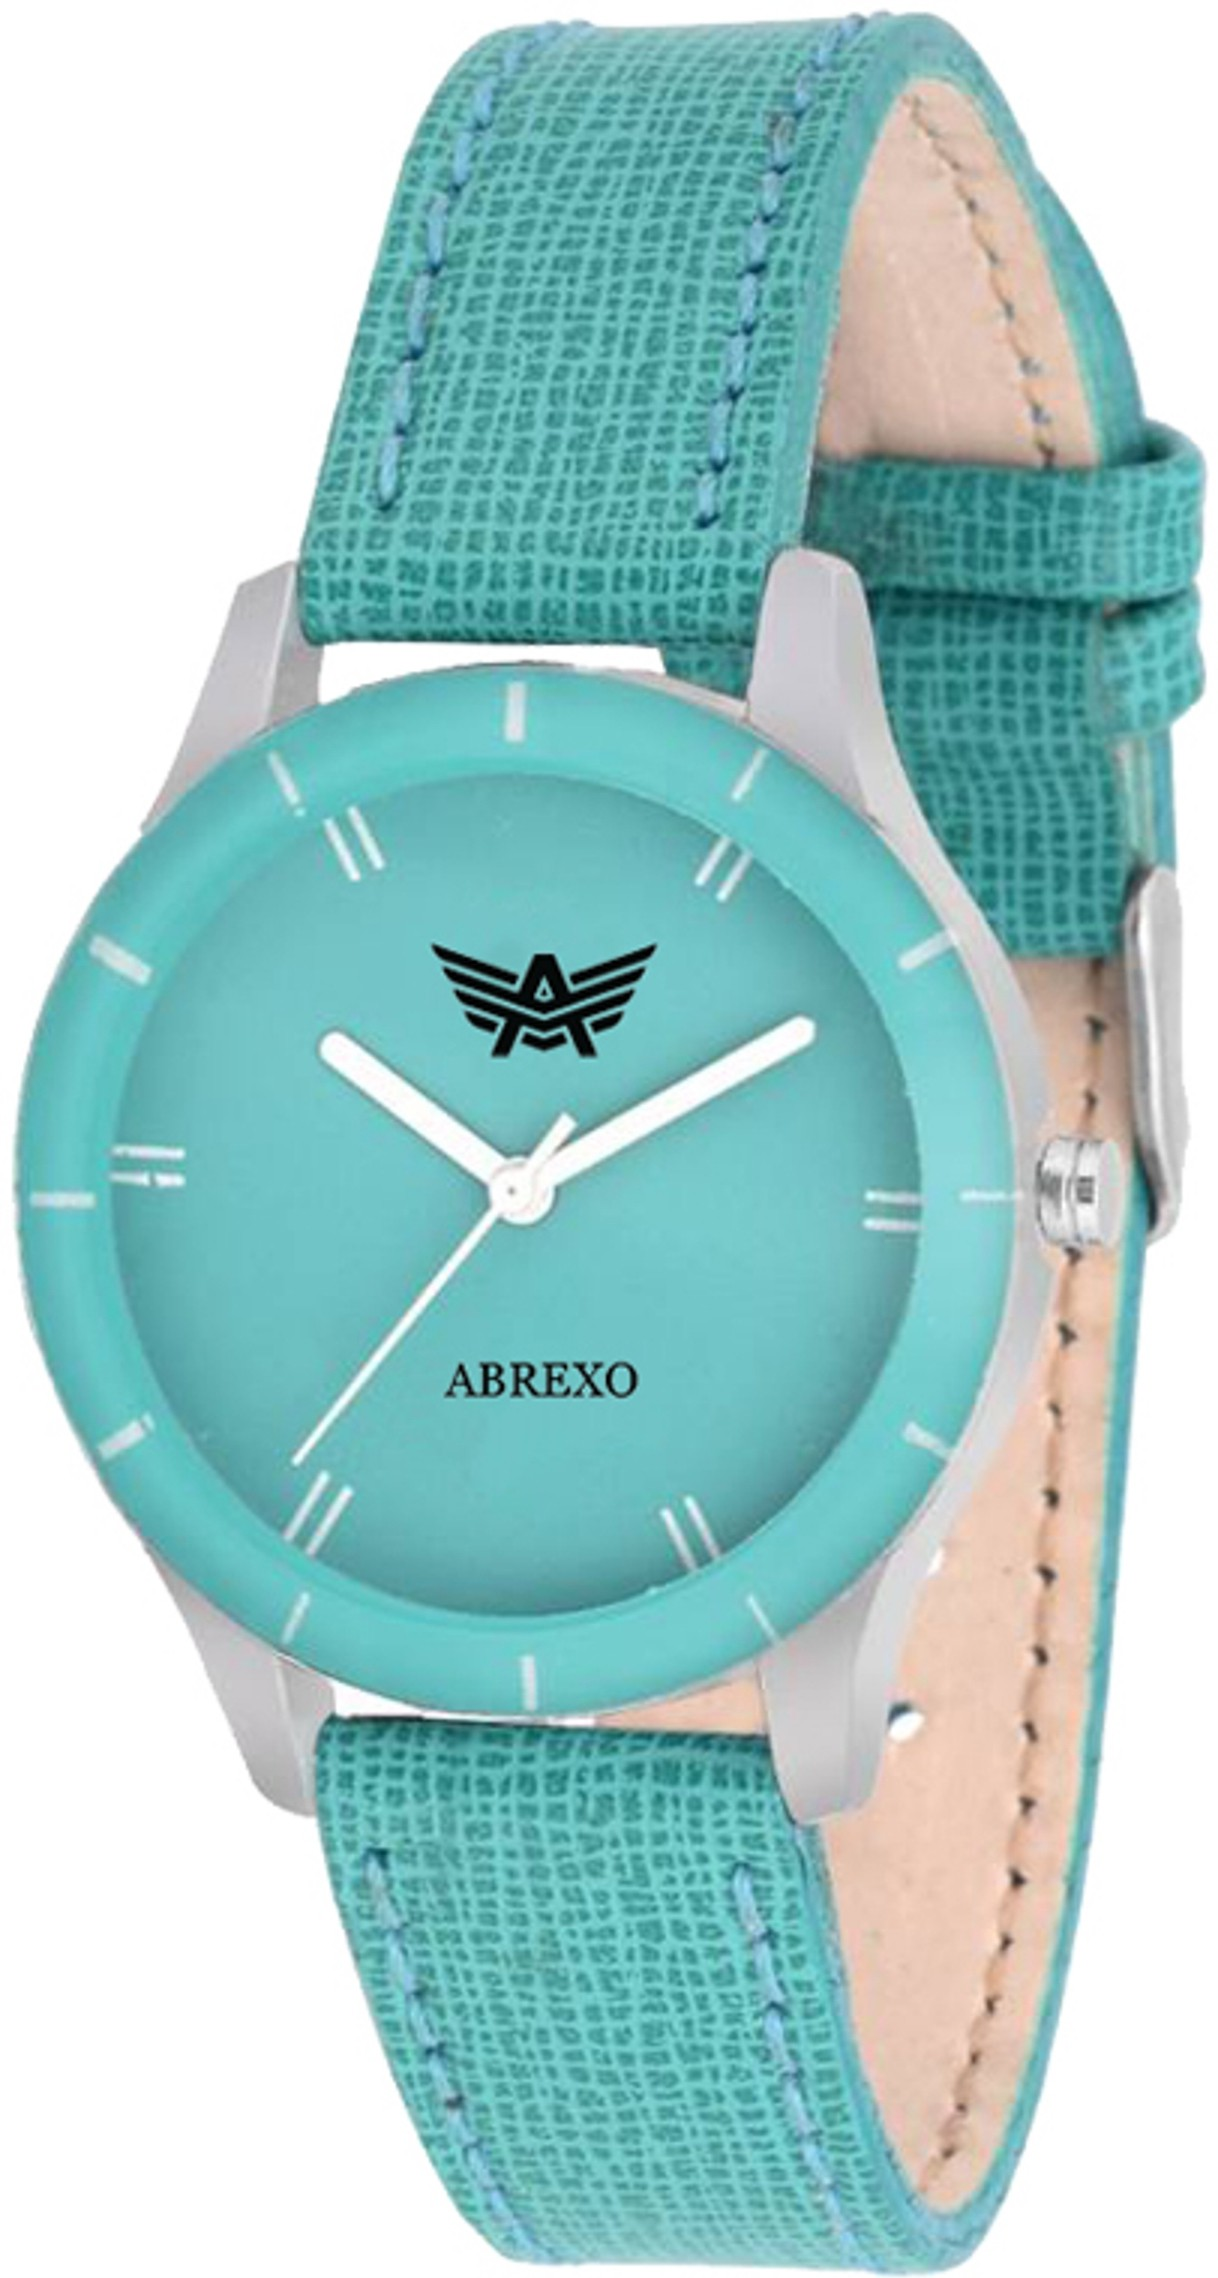 Deals - Delhi - Abrexo & more <br> Womens Watches<br> Category - watches<br> Business - Flipkart.com